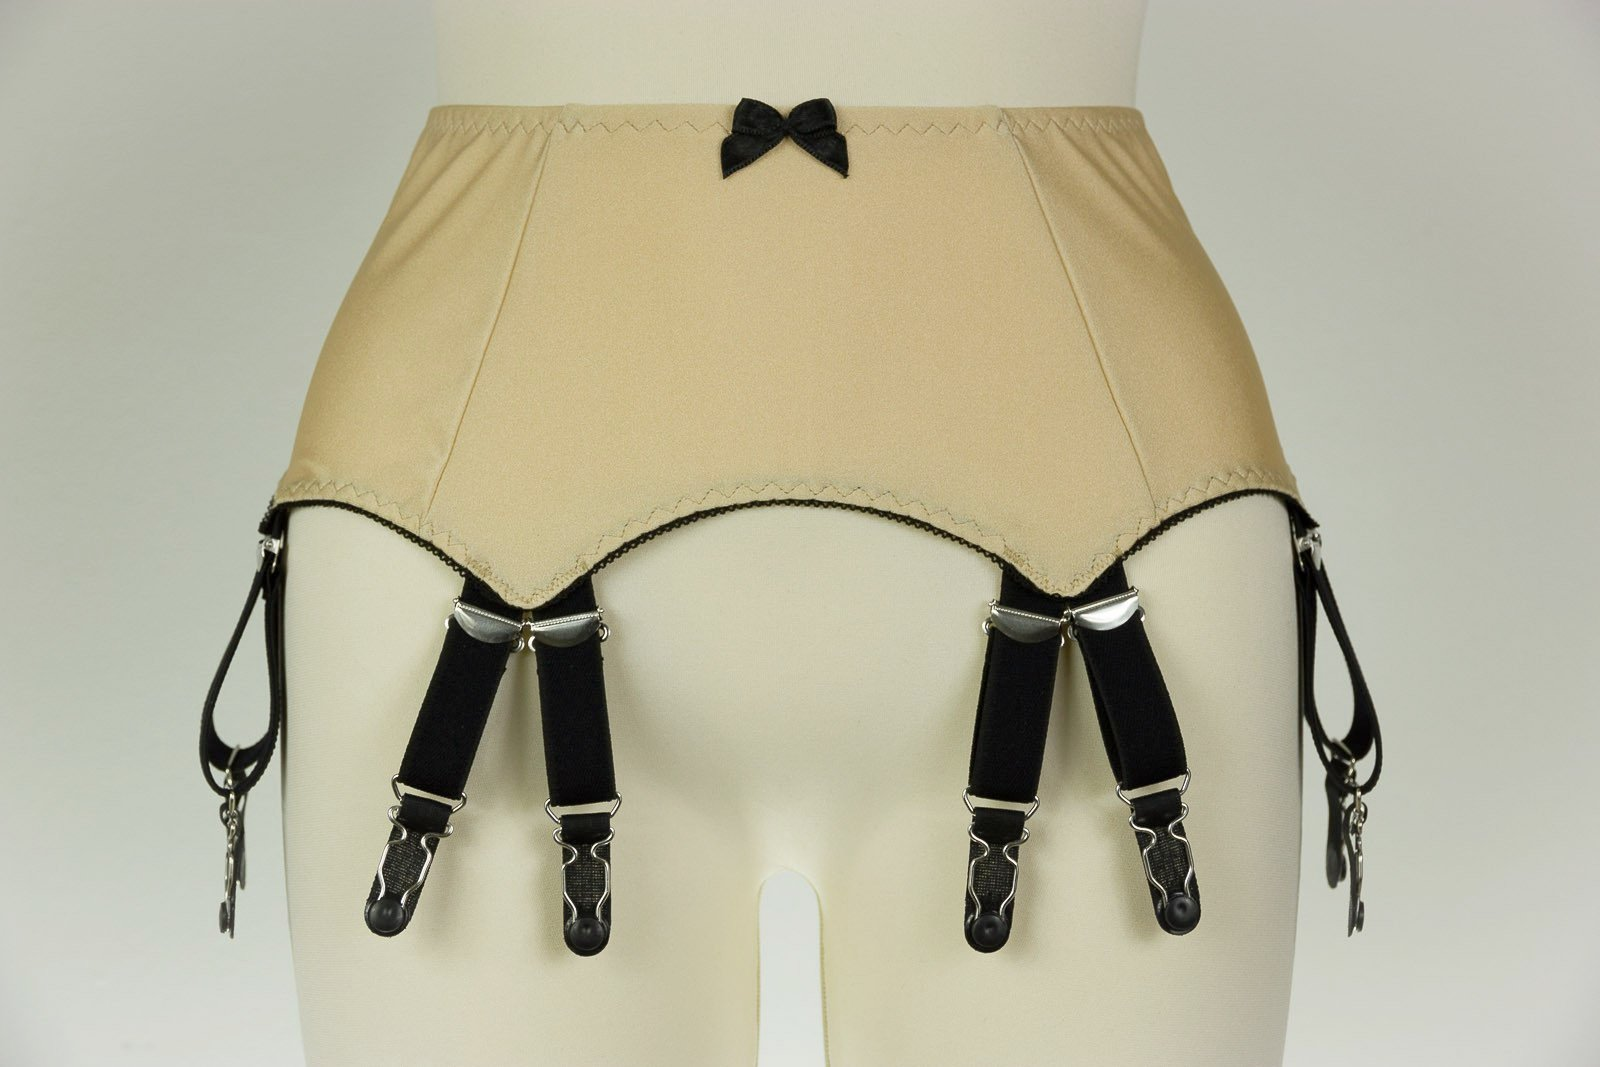 Double 12 Strap JOAN Suspender Belt Fetish Garter Belt - Size S-4XL